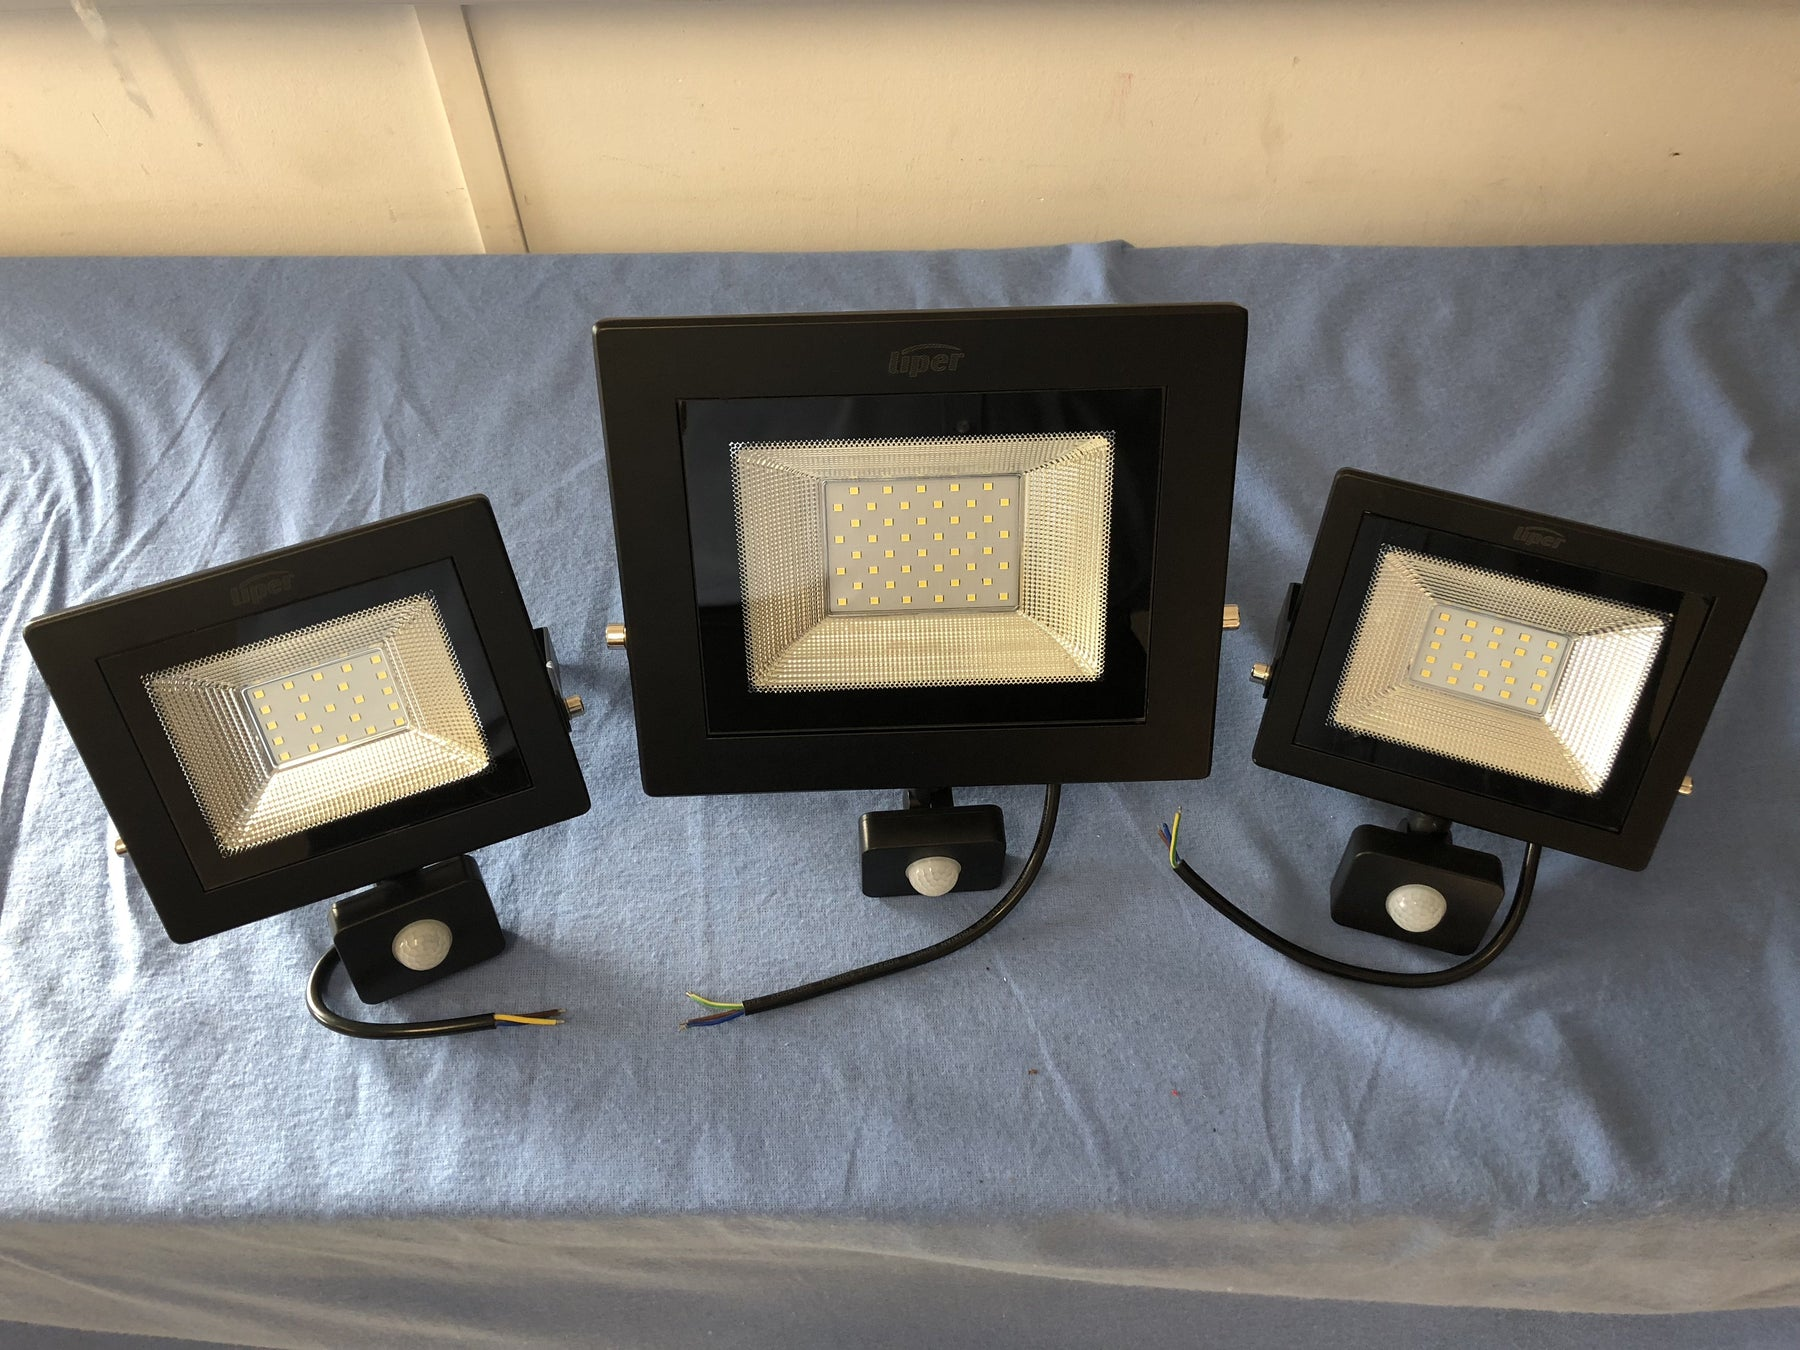 20 Watt Sensor LED Floodlight from the Batteryworldshop.com